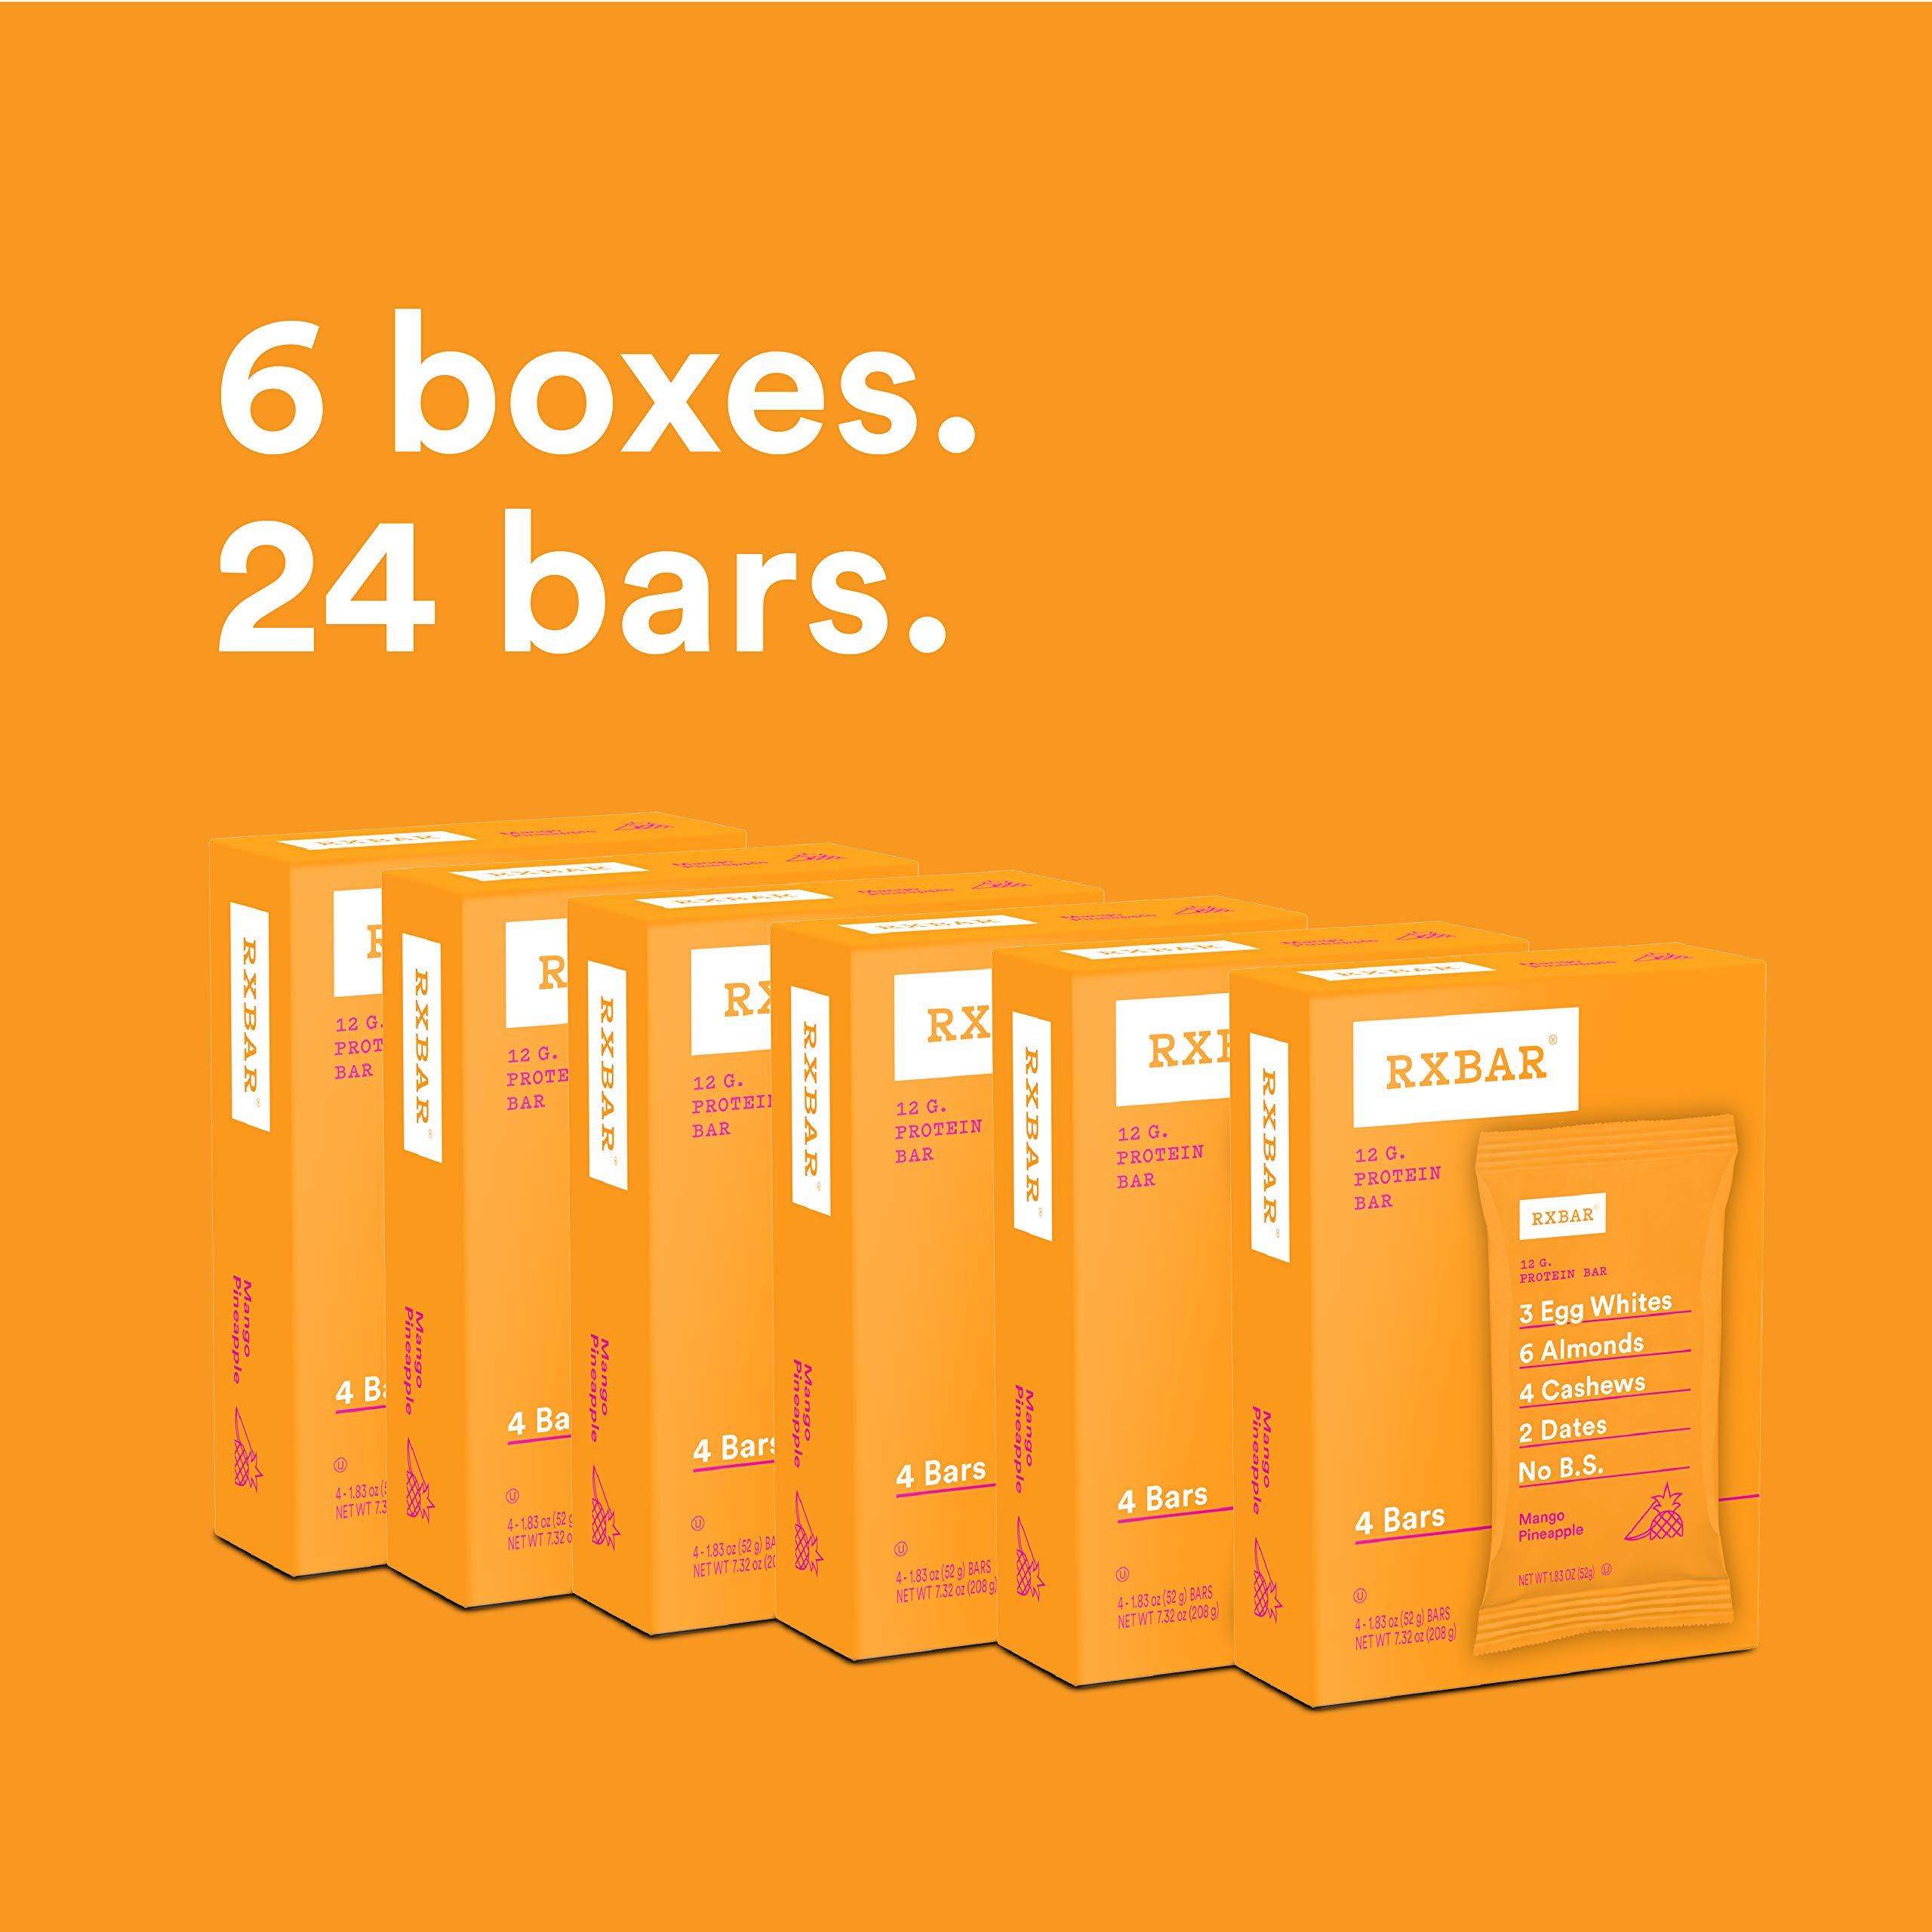 RXBAR Real Food Protein Bar, Mango Pineapple, Gluten Free, 1.83oz Bars, 24 Count by RXBAR (Image #2)